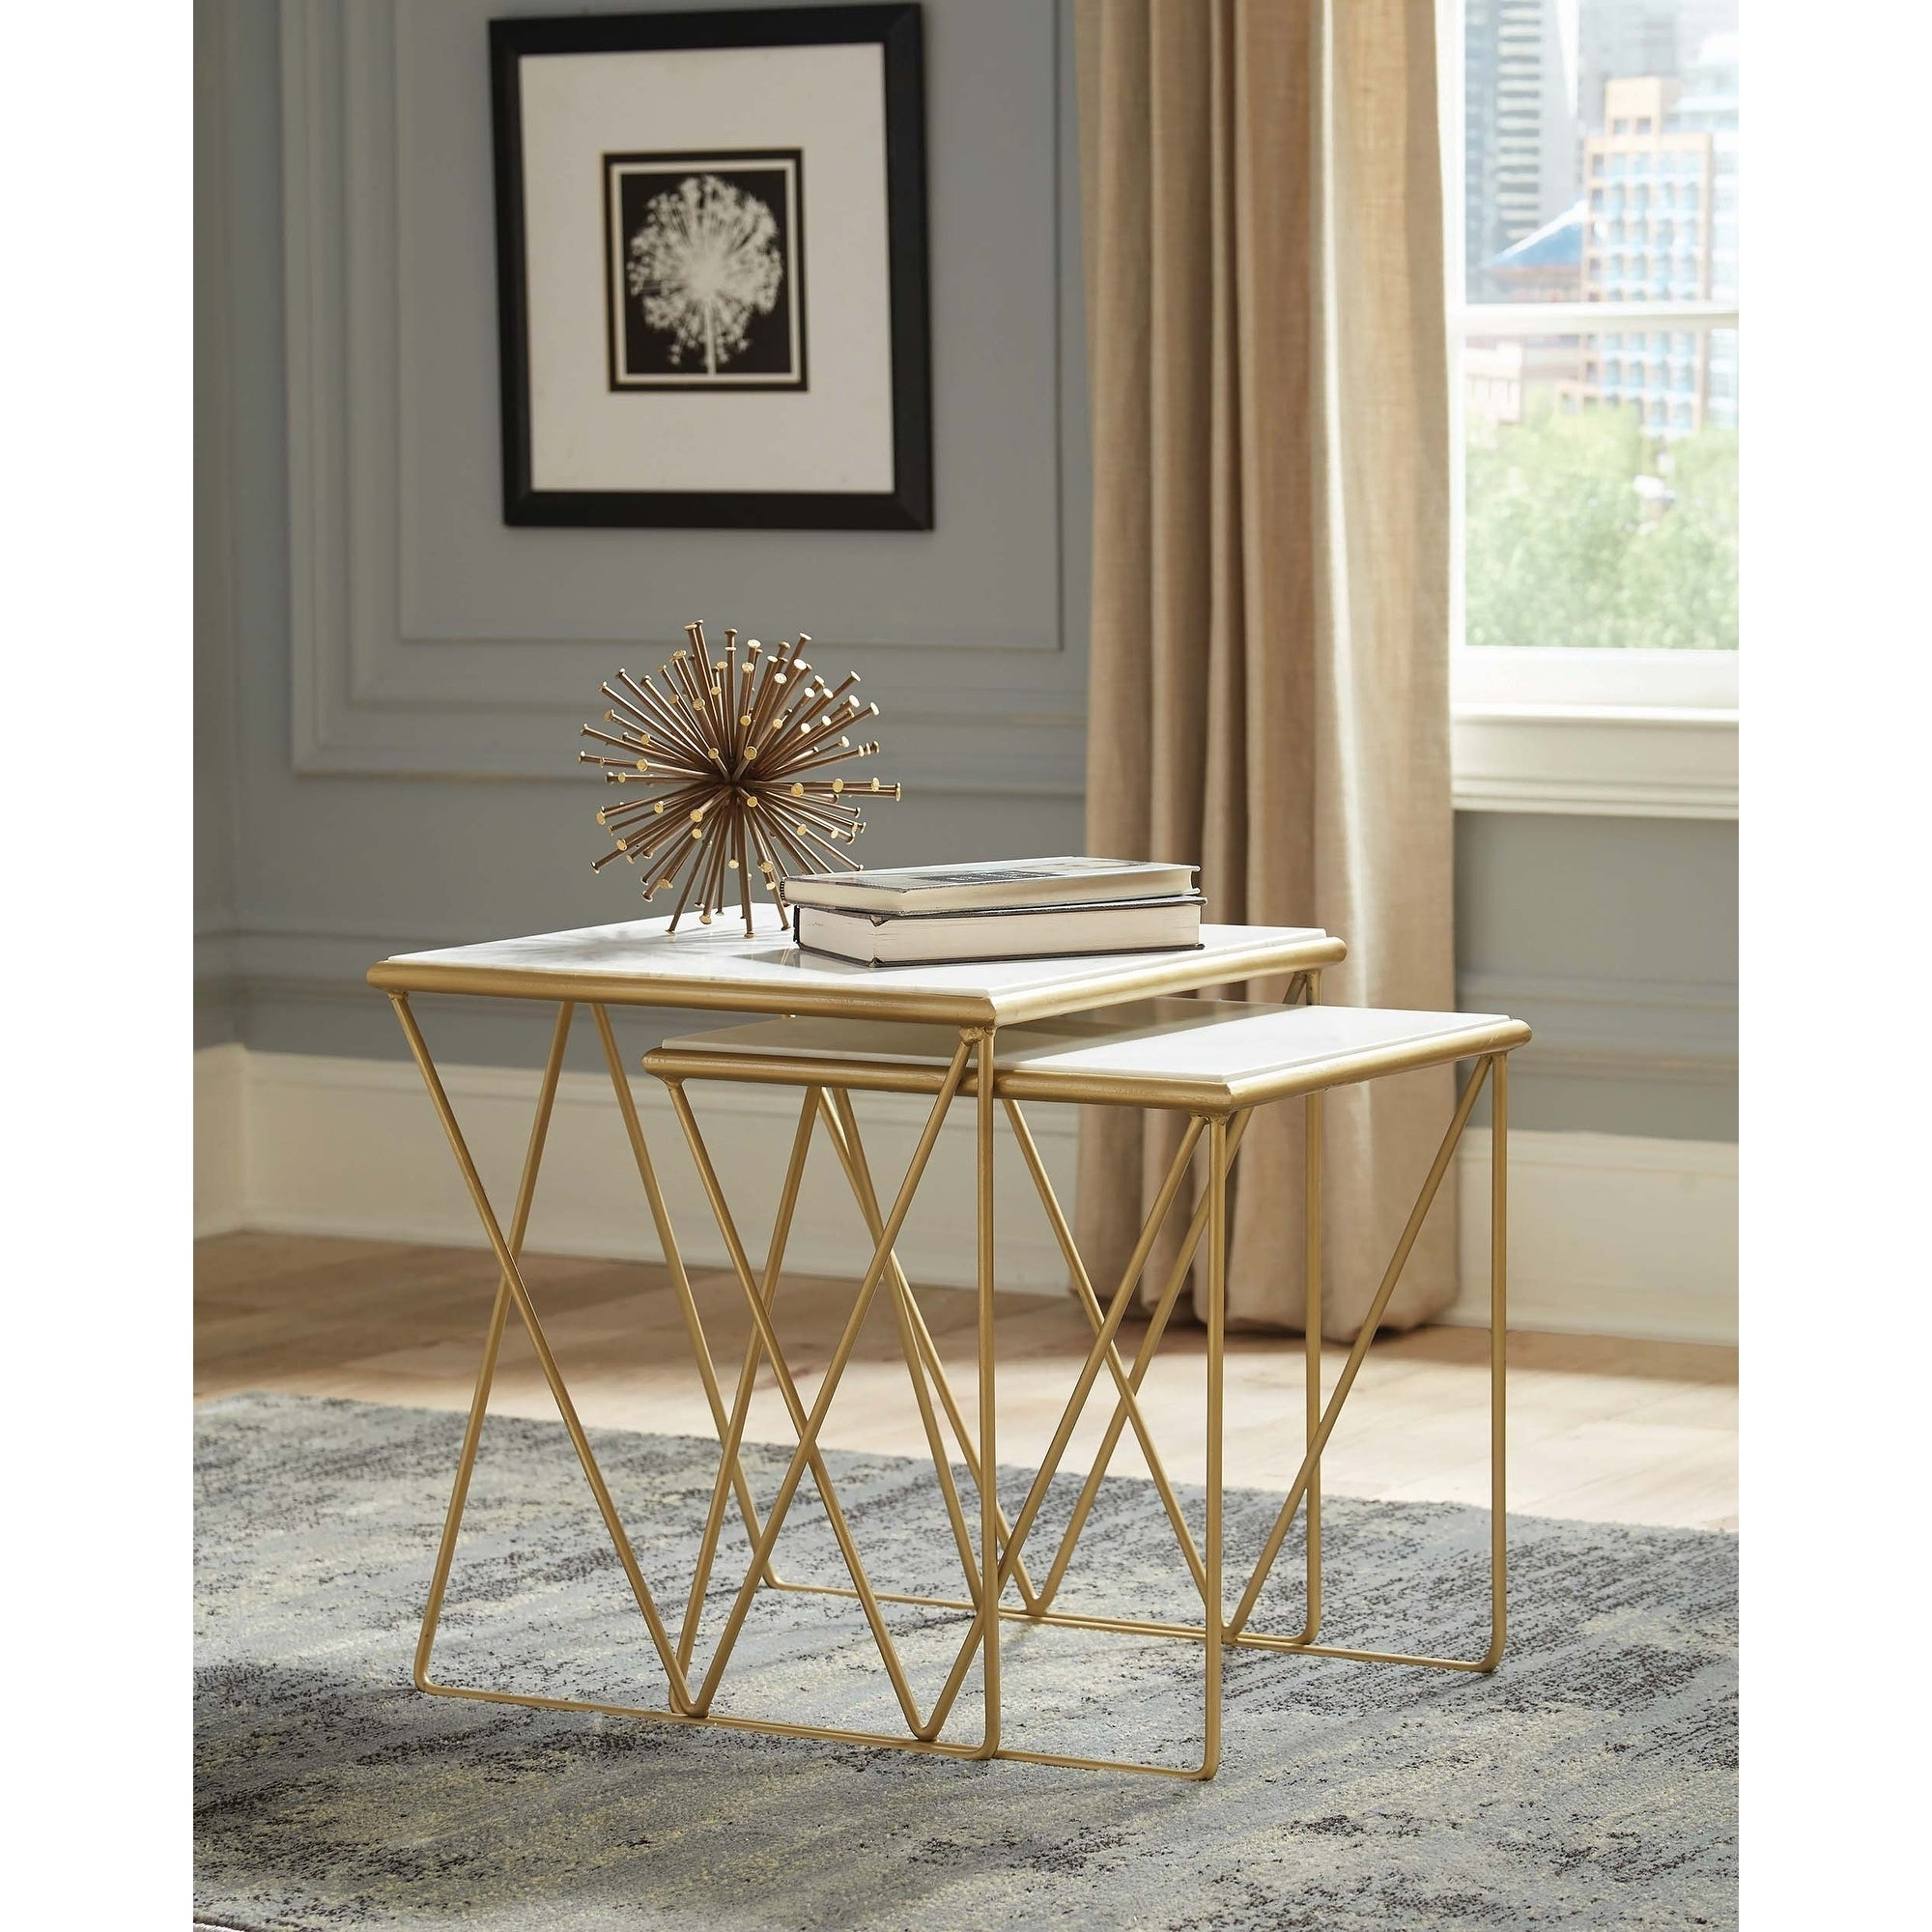 4c633191fe Buy Marble, Nesting Tables Coffee, Console, Sofa & End Tables Online at  Overstock | Our Best Living Room Furniture Deals